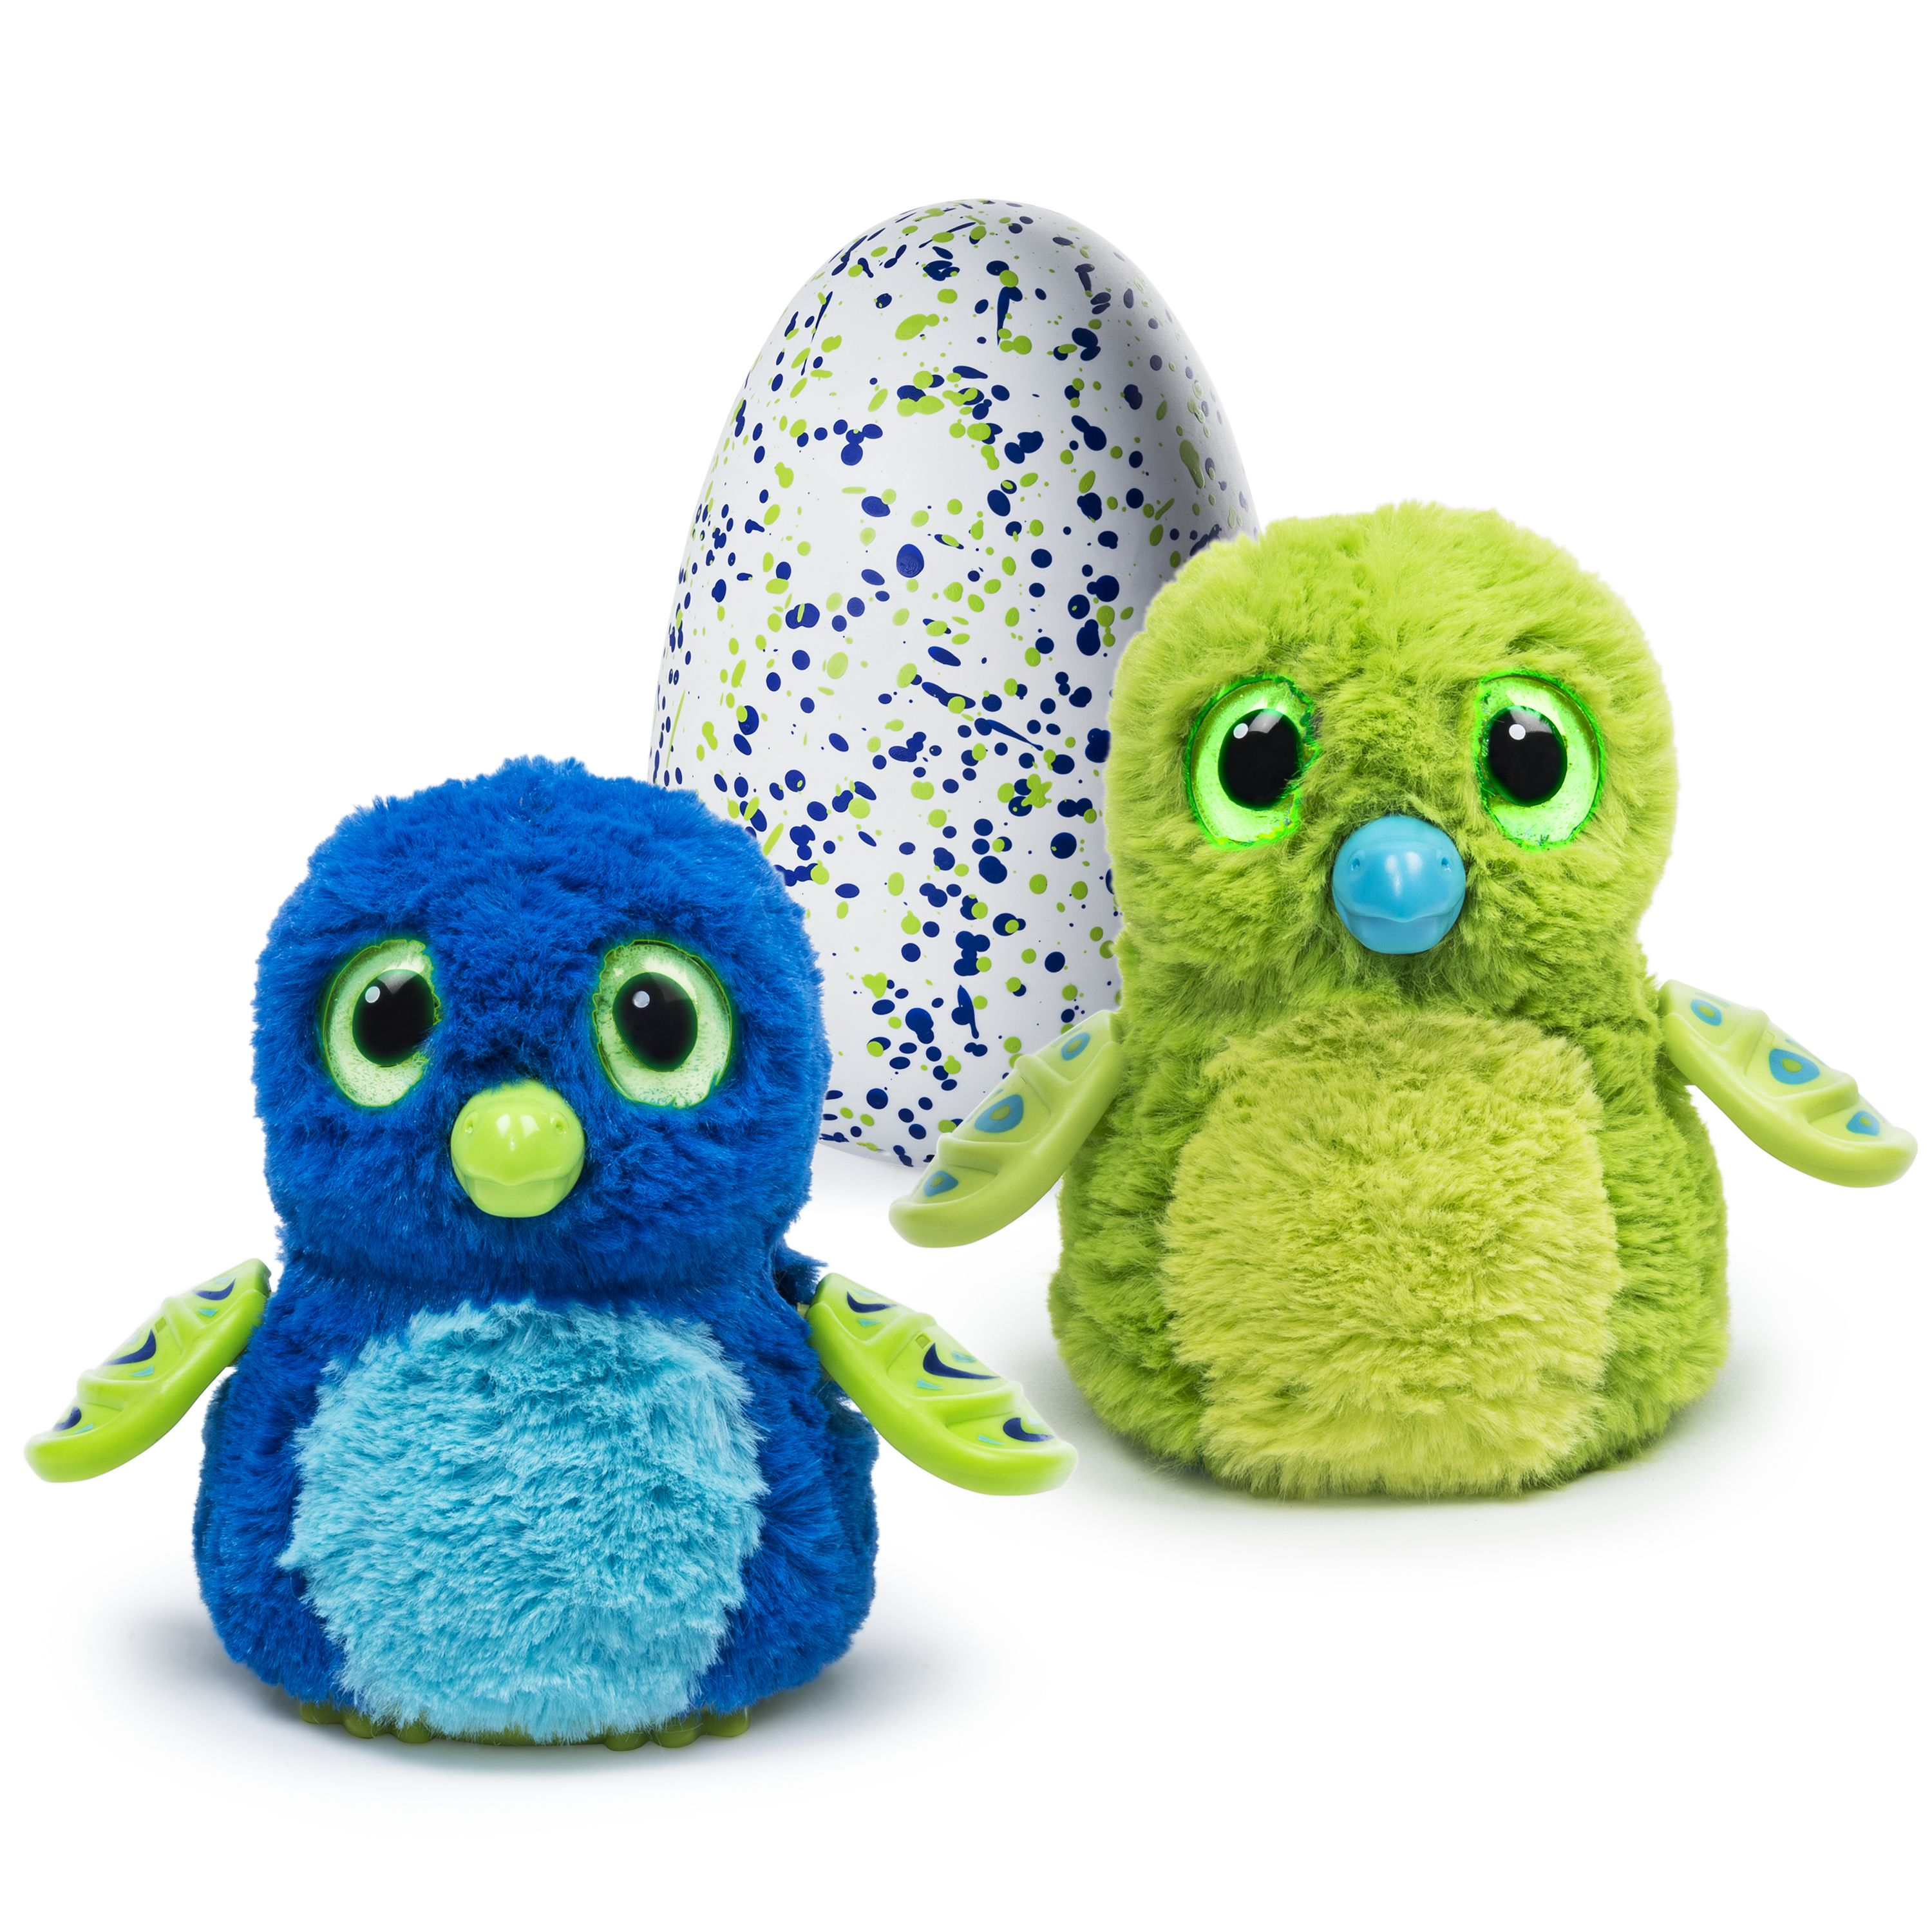 Hatchimals, Hatching Egg, Interactive Creature, Draggle, Blue/Green Egg by Spin Master